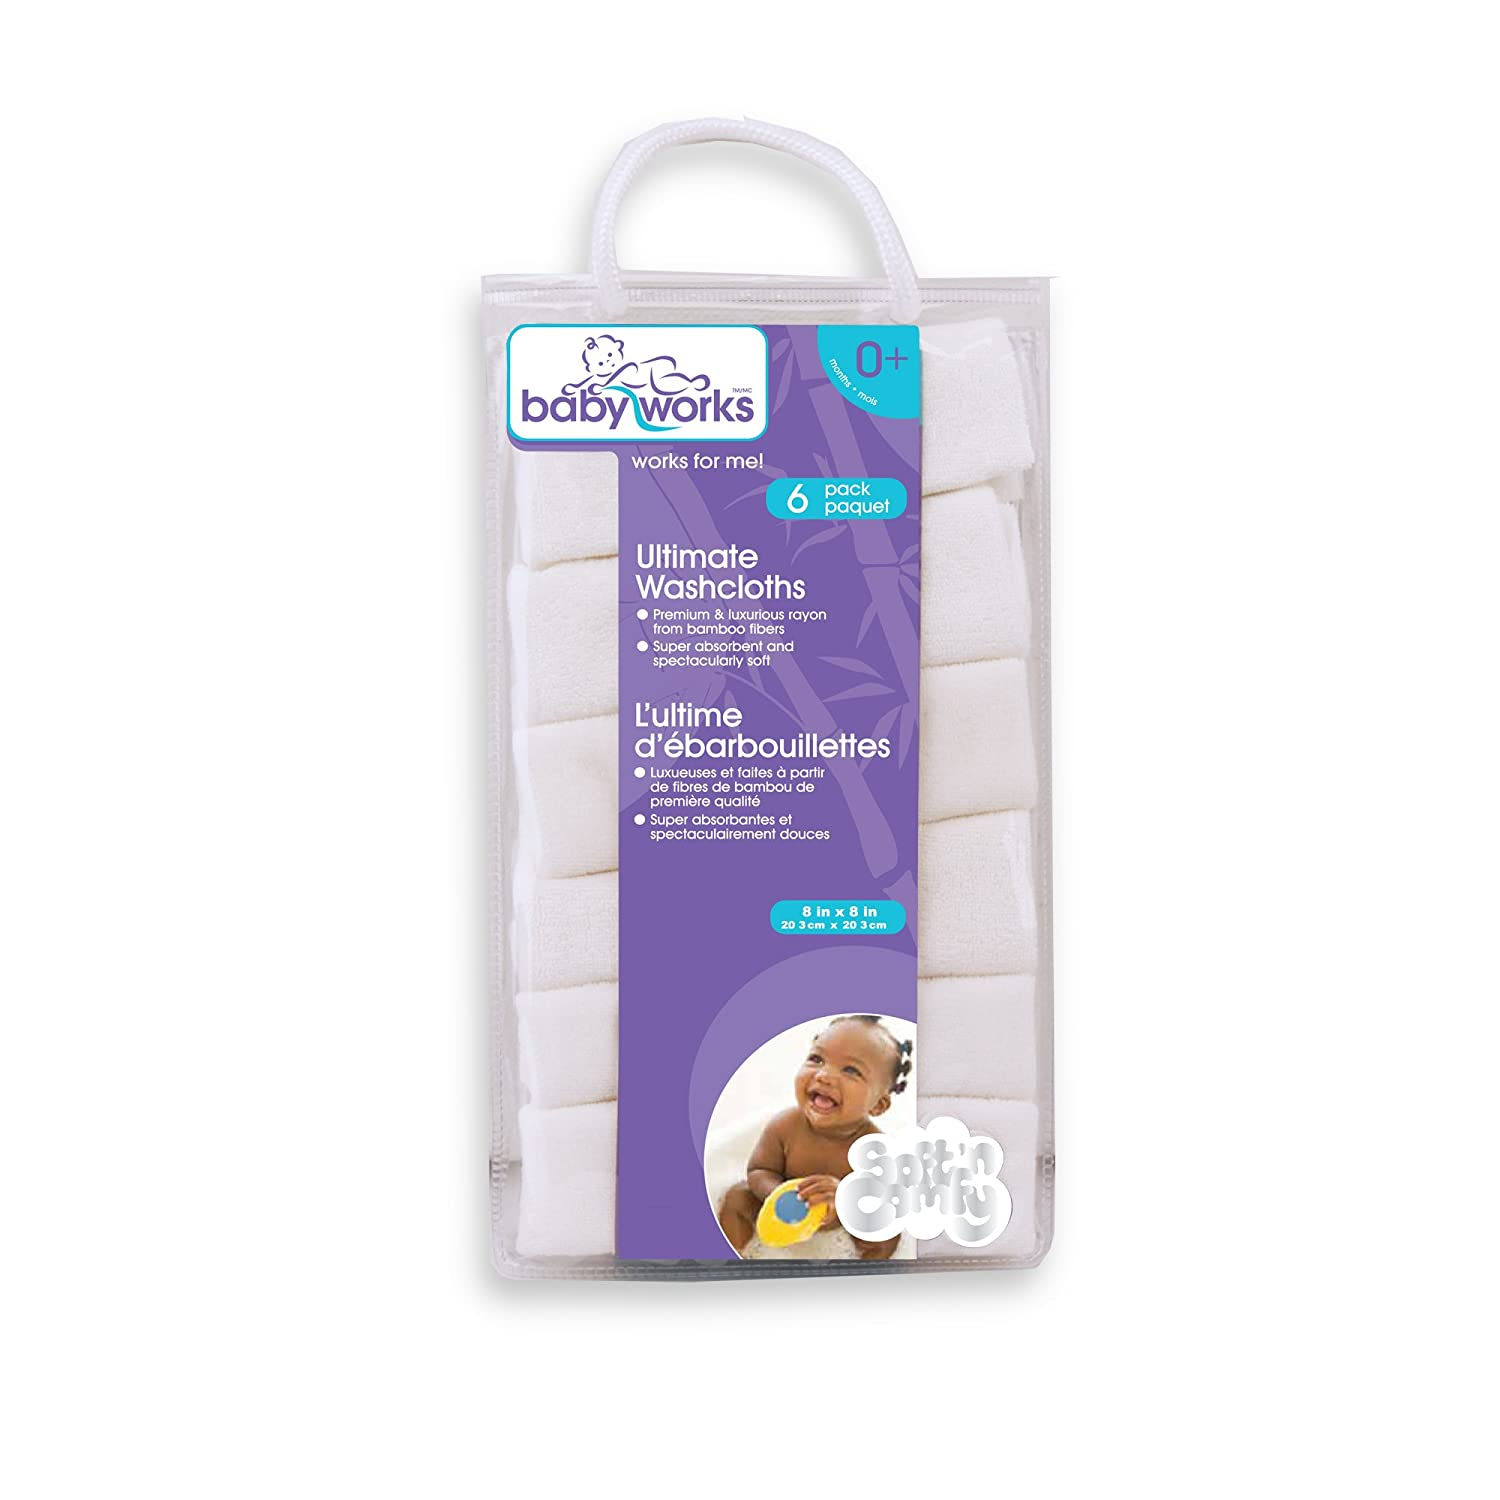 Baby Works Rayon from Bamboo Ultimate Washcloths 29329